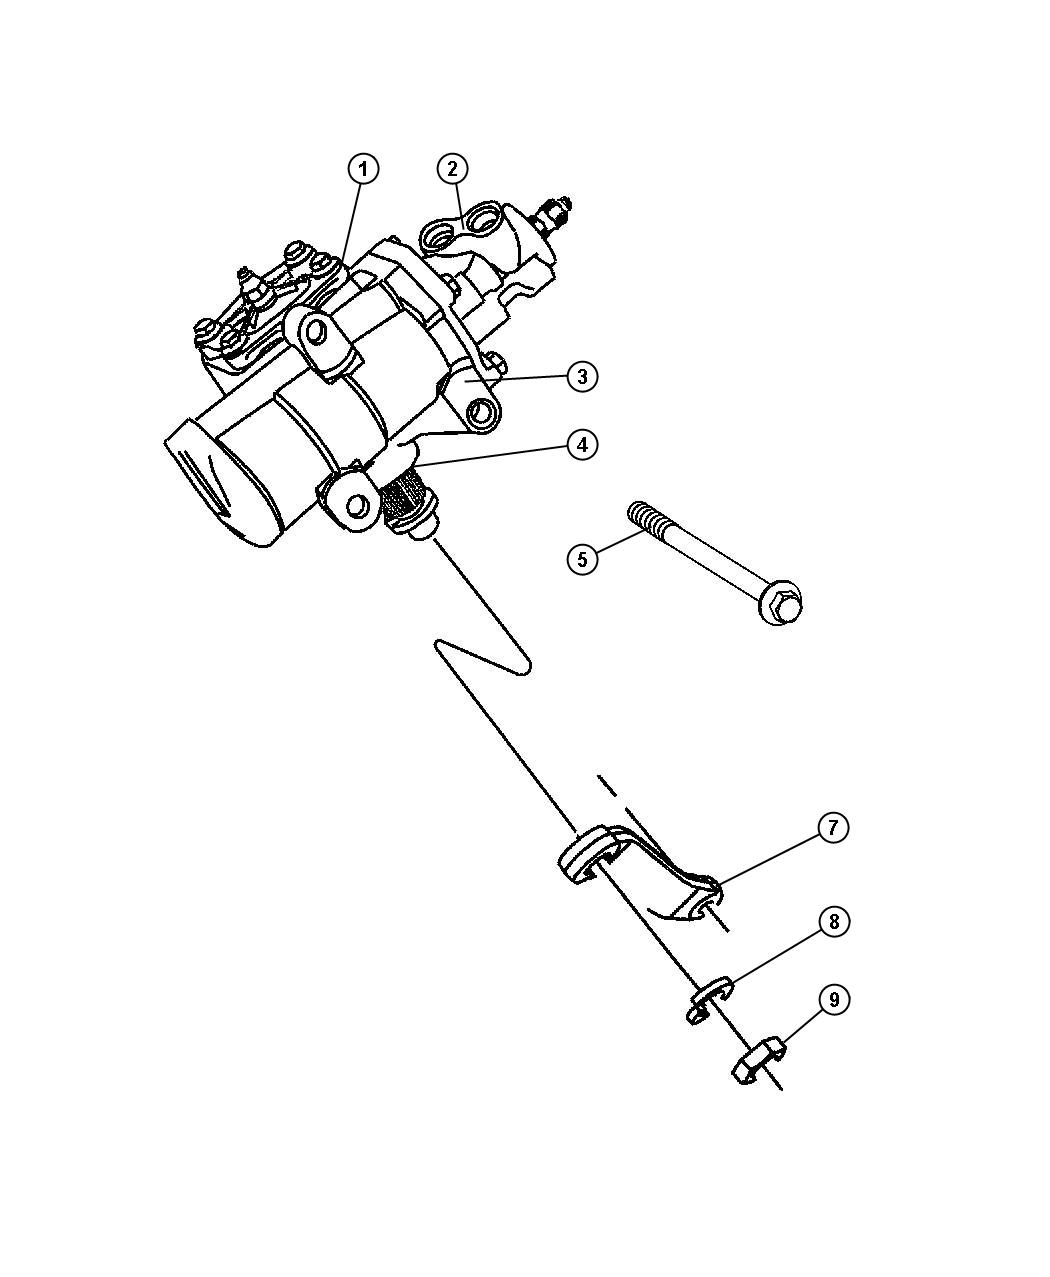 Jeep Patriot Gear Power Steering Used For Rack And